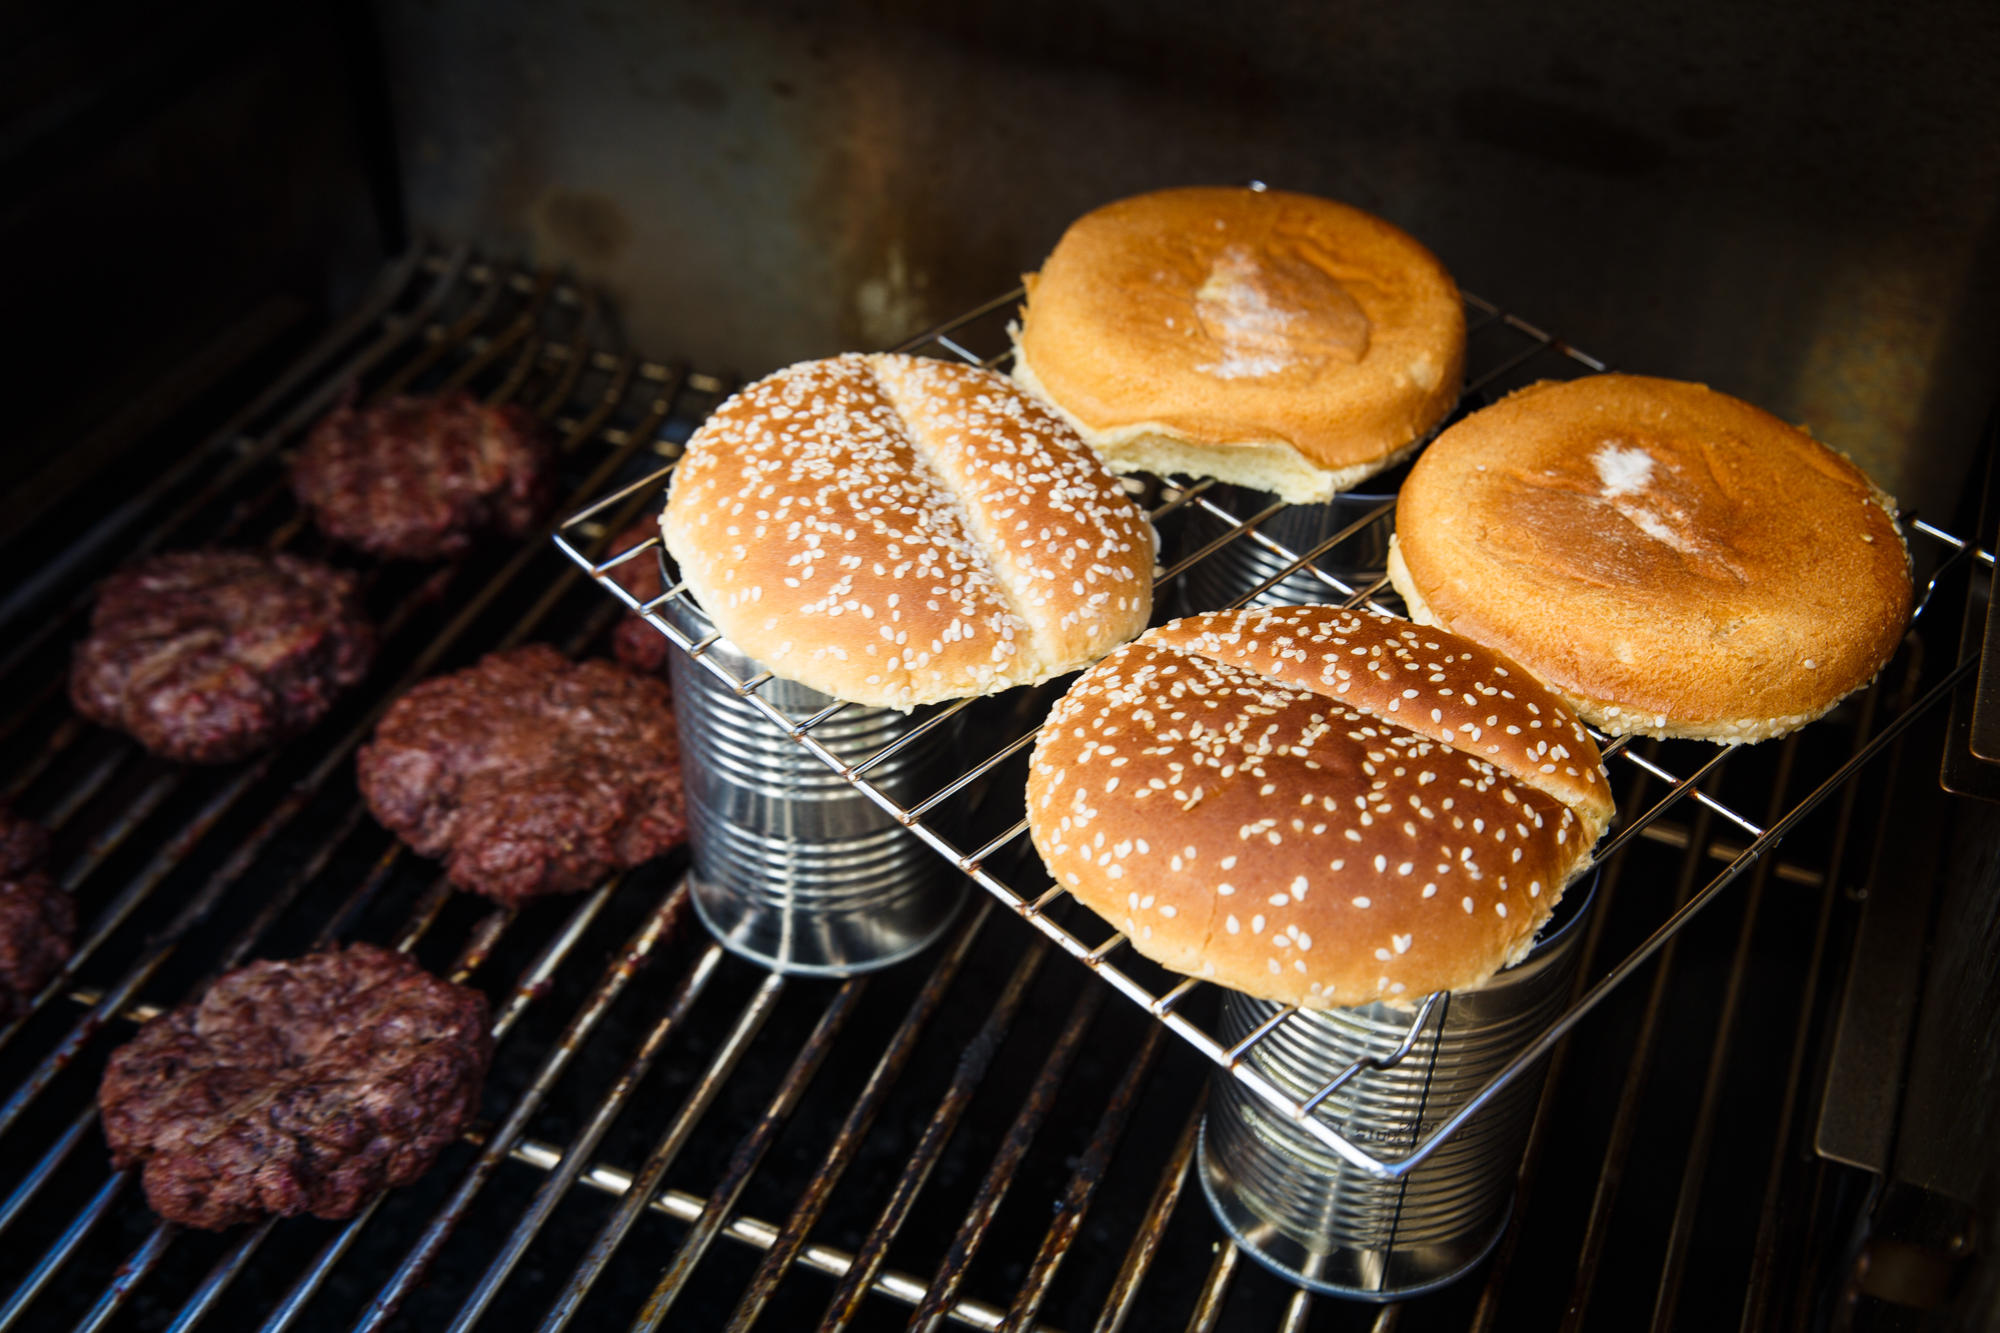 grilling-4x3-cnet-smart-home-9307-023